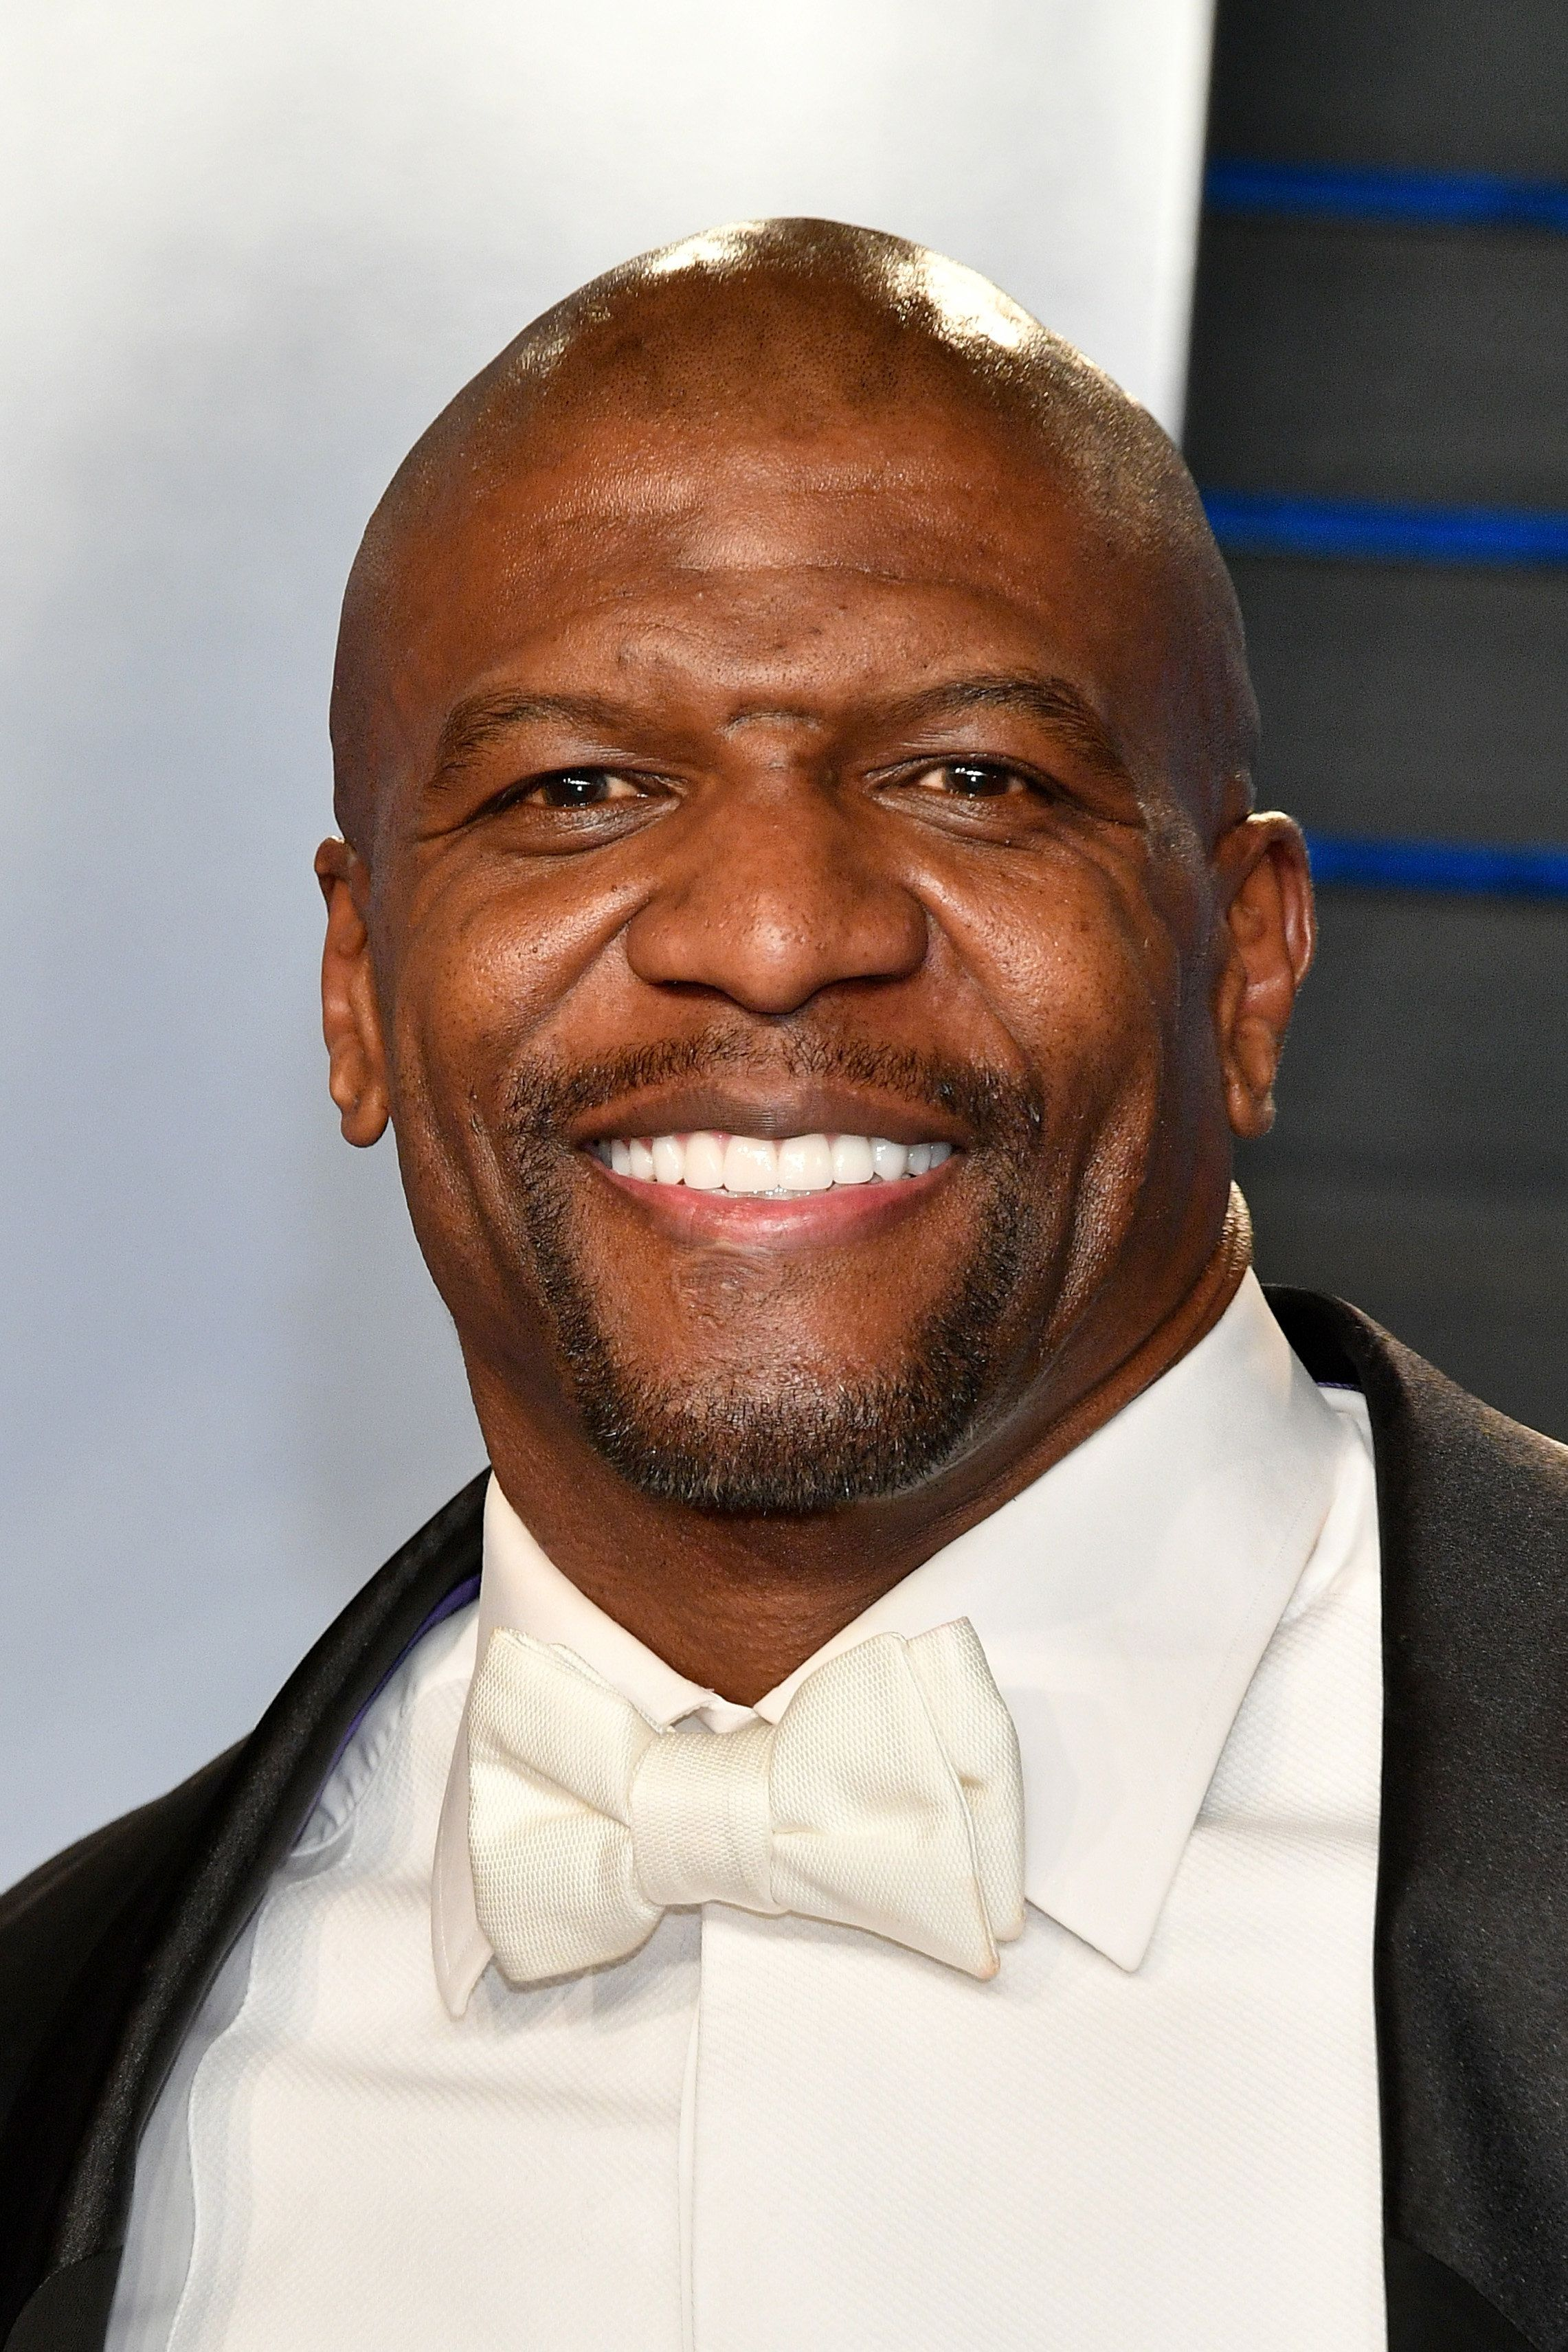 BEVERLY HILLS, CA - MARCH 04:  Terry Crews attends the 2018 Vanity Fair Oscar Party hosted by Radhika Jones at Wallis Annenberg Center for the Performing Arts on March 4, 2018 in Beverly Hills, California.  (Photo by Dia Dipasupil/Getty Images)